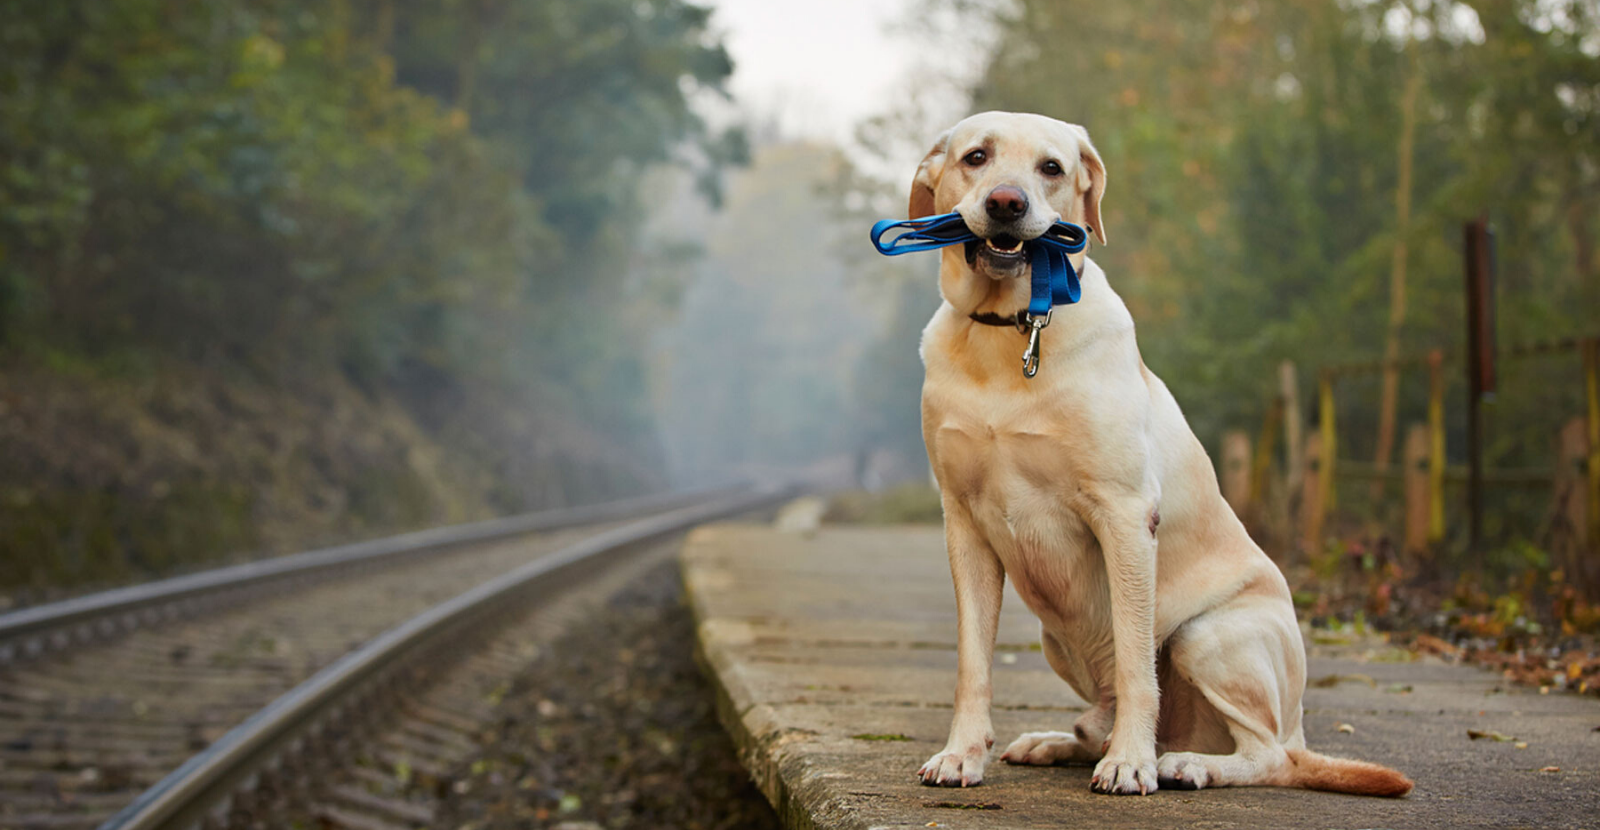 5 Tips to Prevent Your Pet from Being Lost